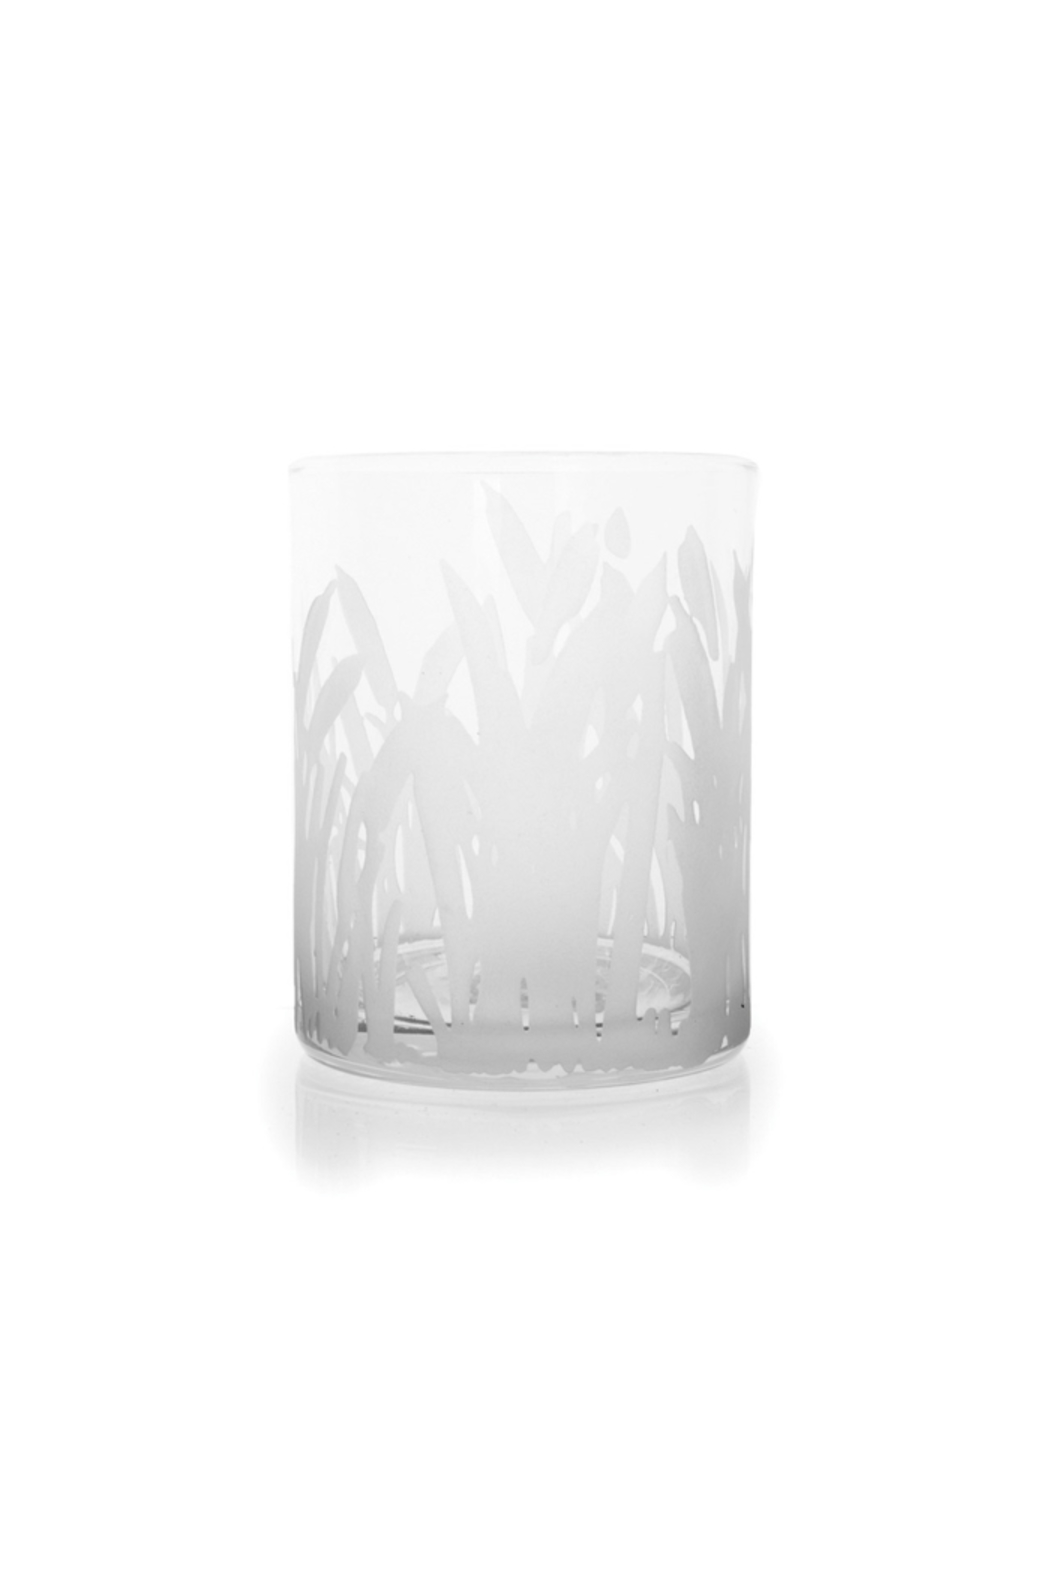 The Birds Nest MARSHLANDS DOUBLE OLD FASHION ETCHED GLASS - Main Image